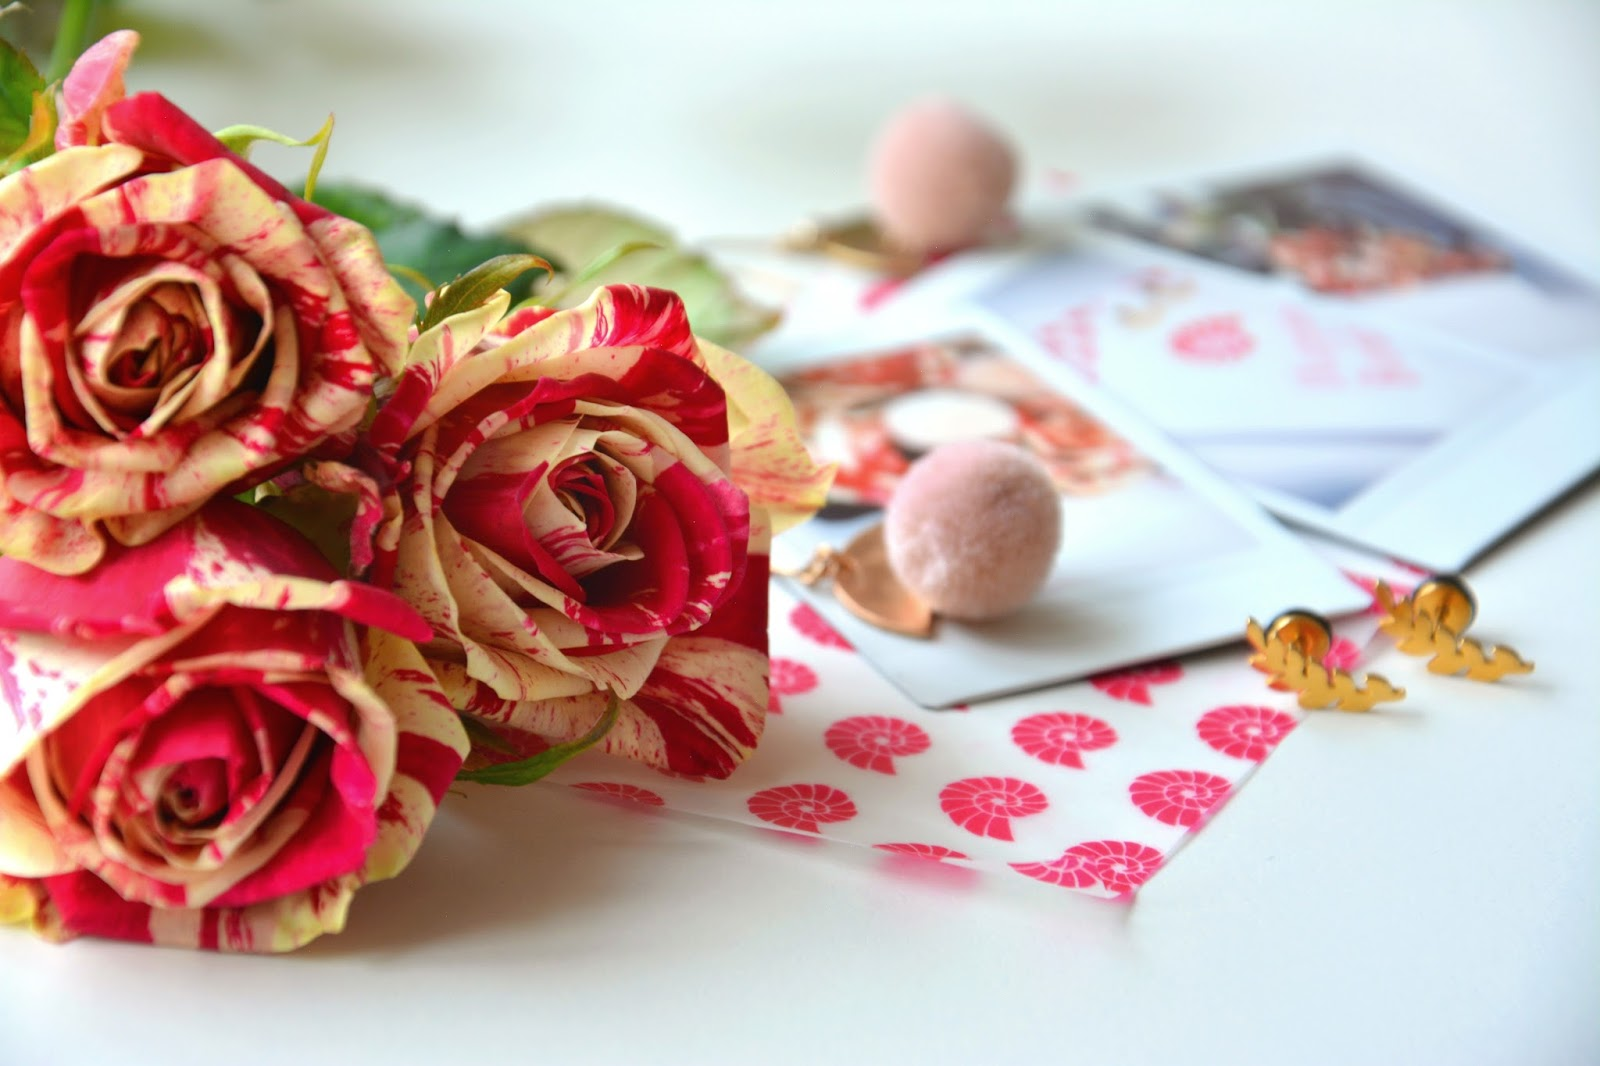 Instax Mini 90 Retro Camera Pictures; Happiness Boutique Leafy Fern Stud Earrings; Happiness Boutique Pom Pom Earrings; Marbled Red & Cream Roses